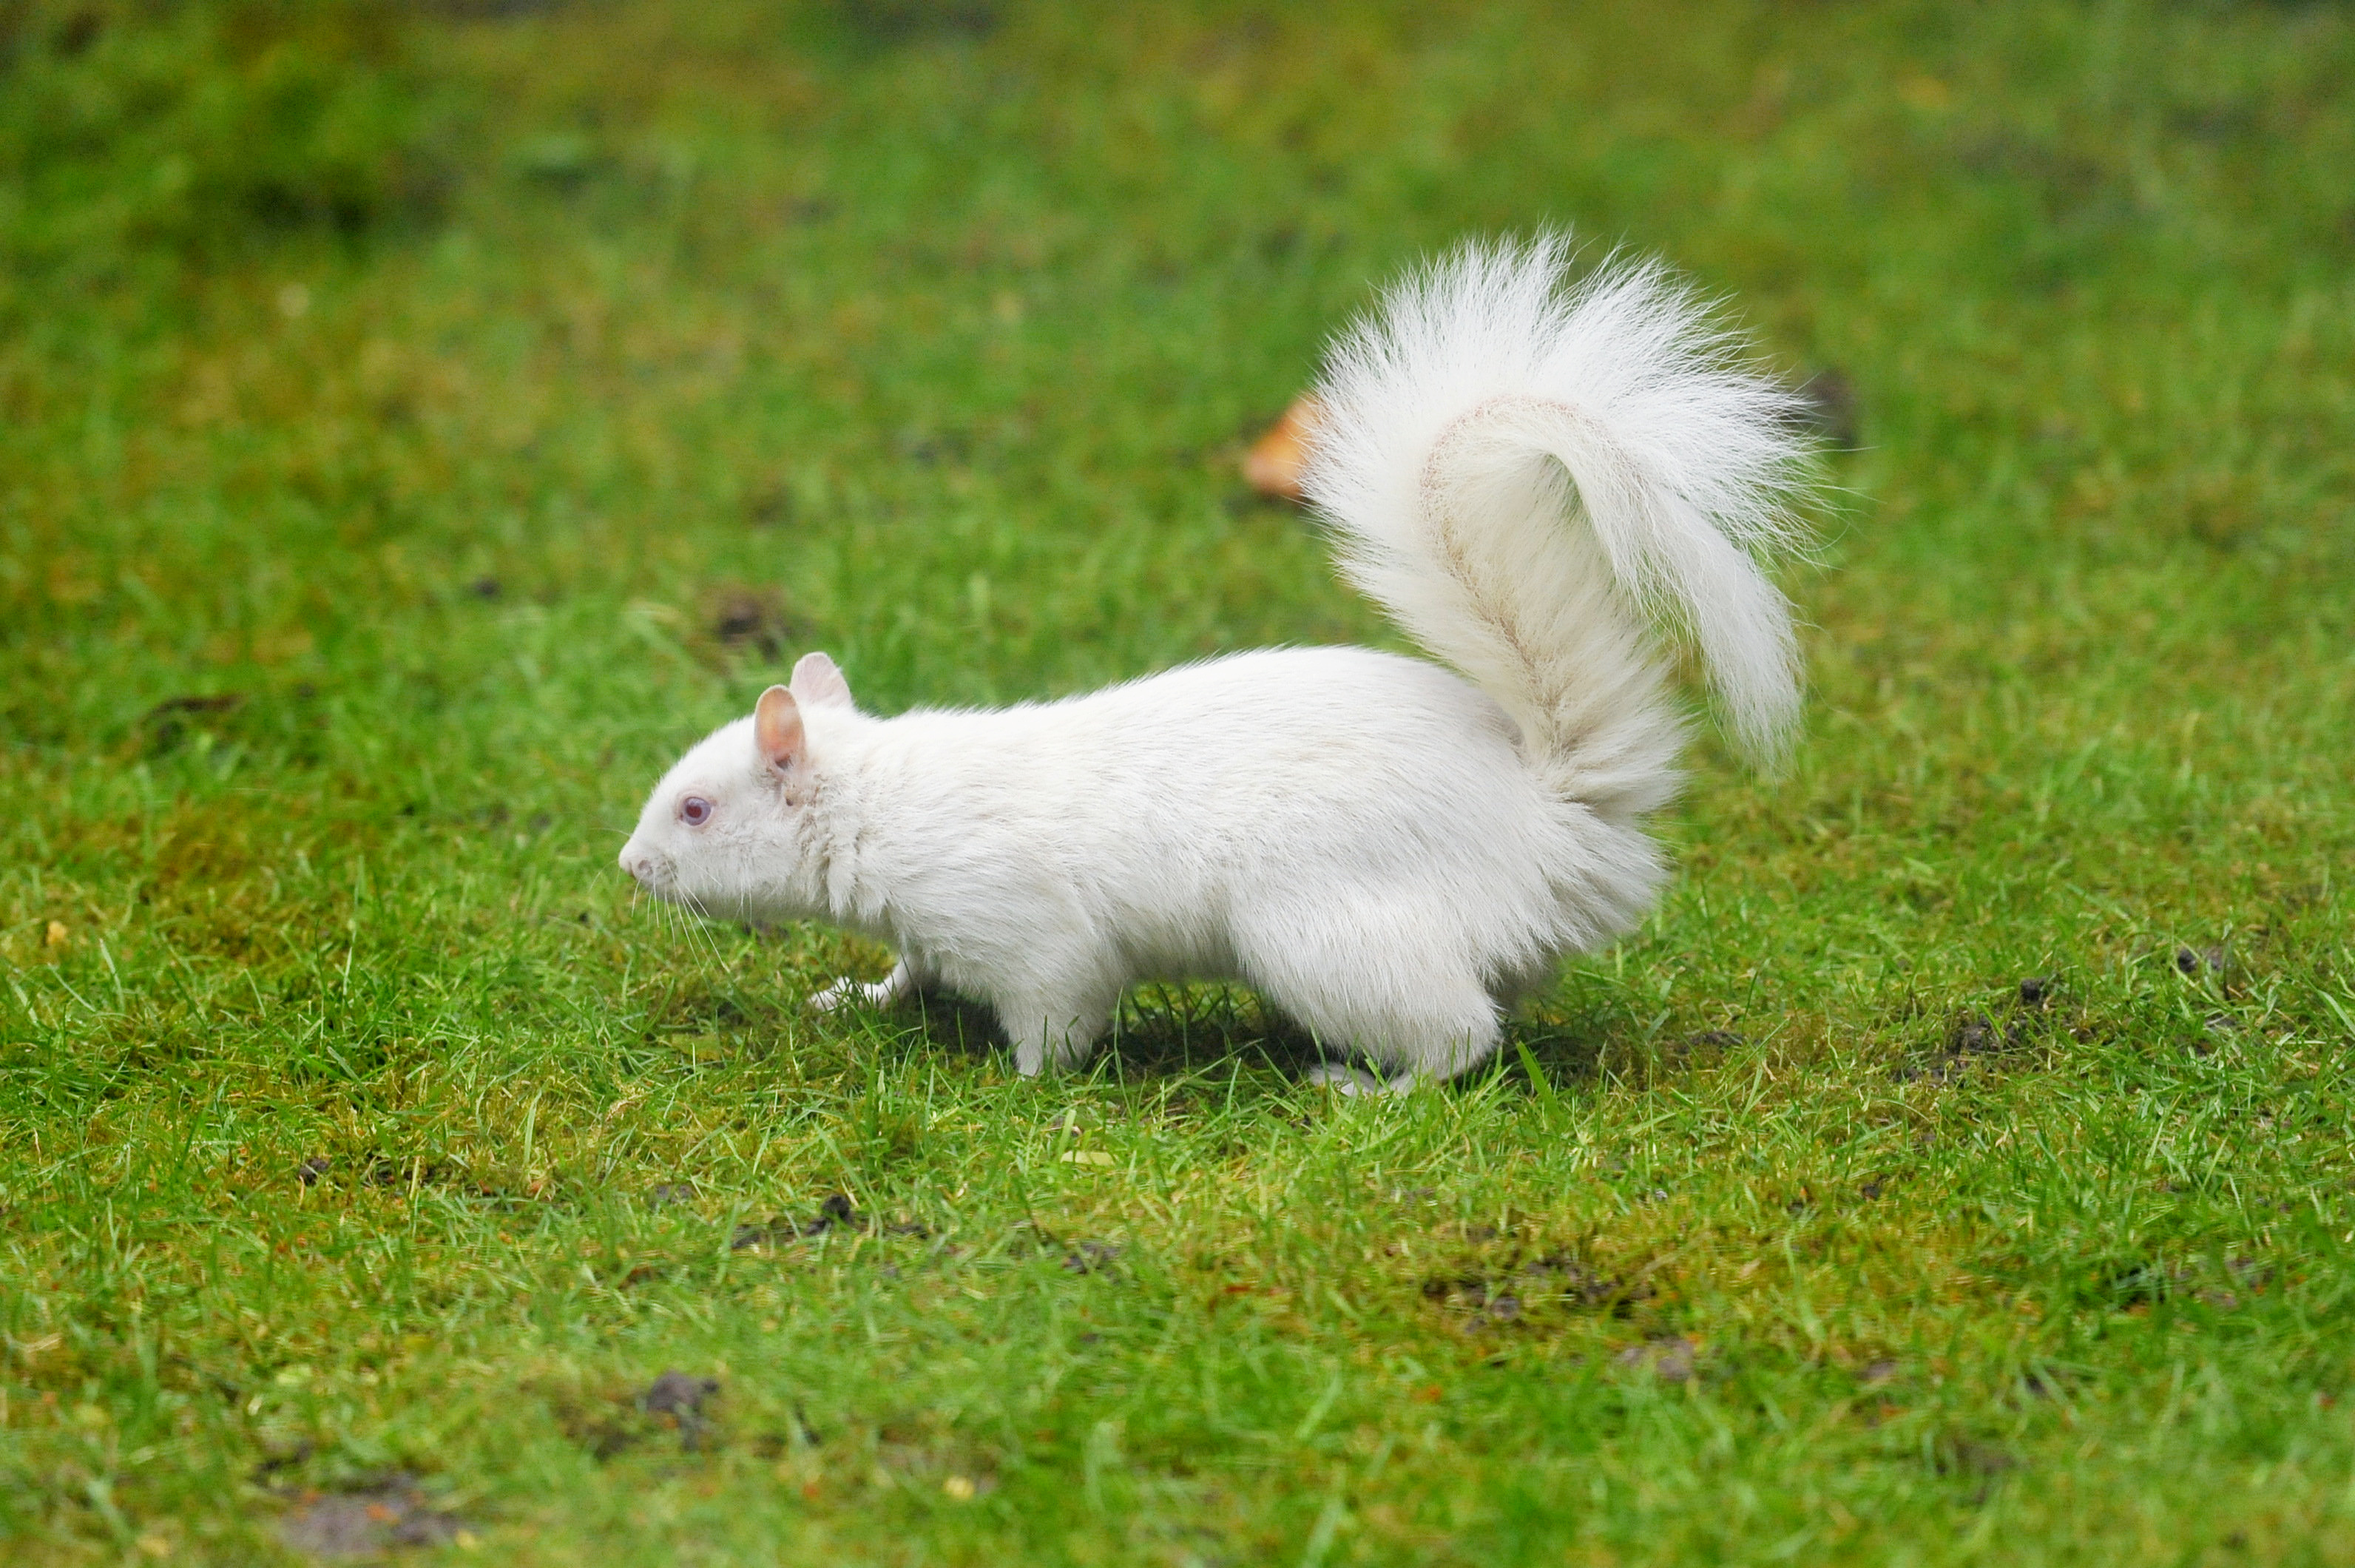 Pictures of a rare albino squirrel scavenging for food. Credit: SWNS